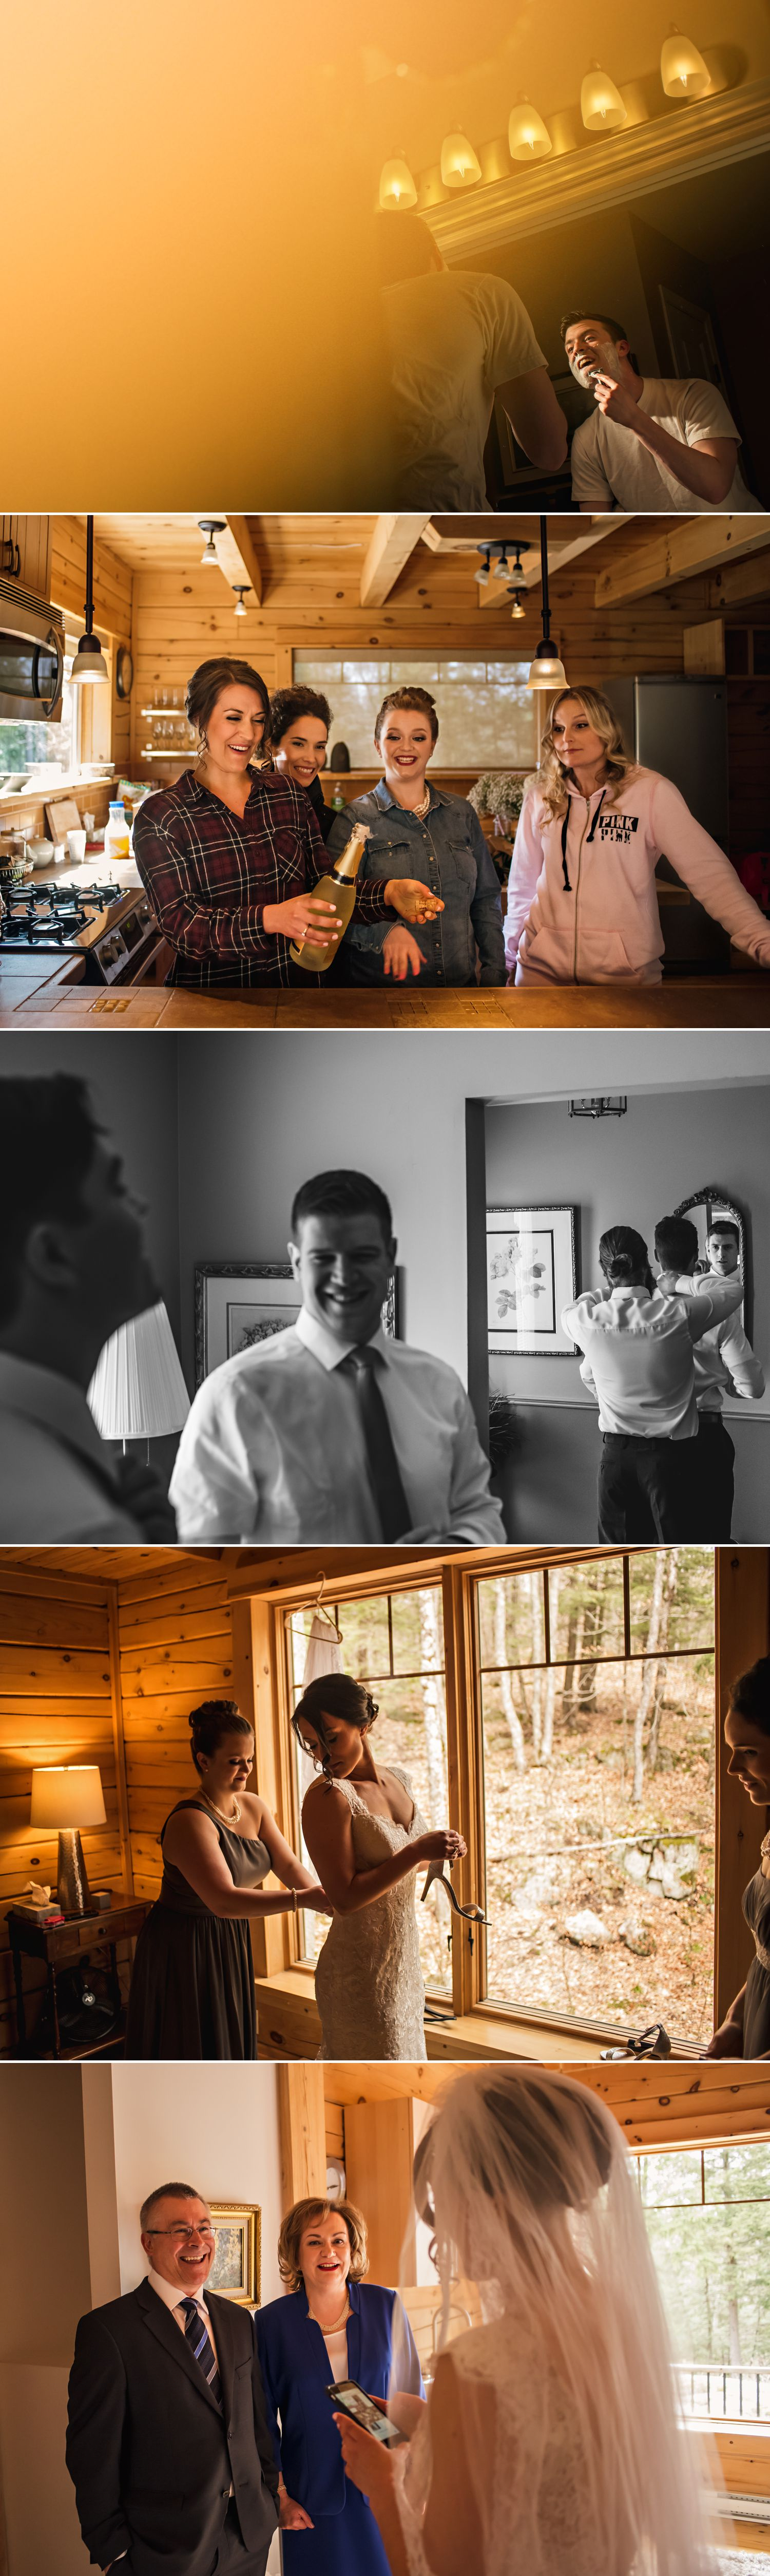 bride-and-groom-getting-ready-at-a-le-belvedere-wedding-in-wakefield-quebec.jpg